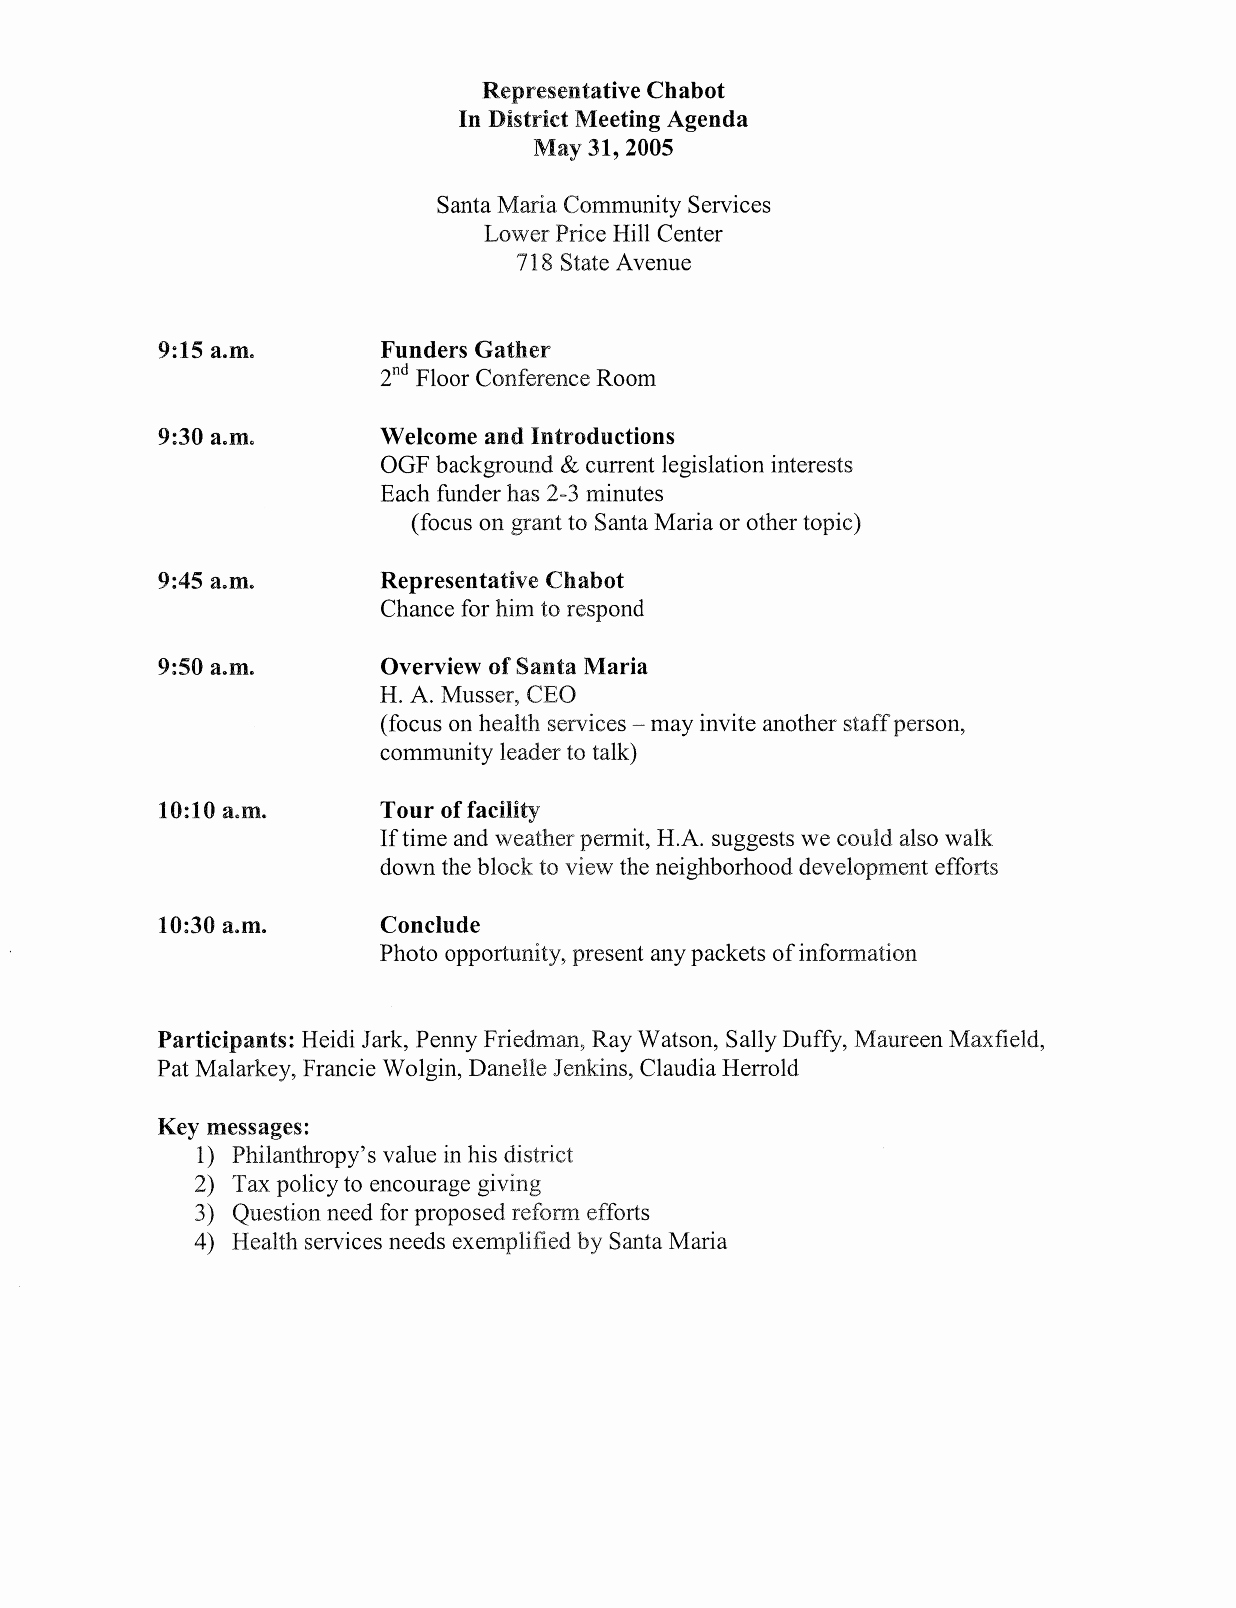 Sample Of A Meeting Agenda New Best S Of Sample Meeting Agenda and Minutes Meeting